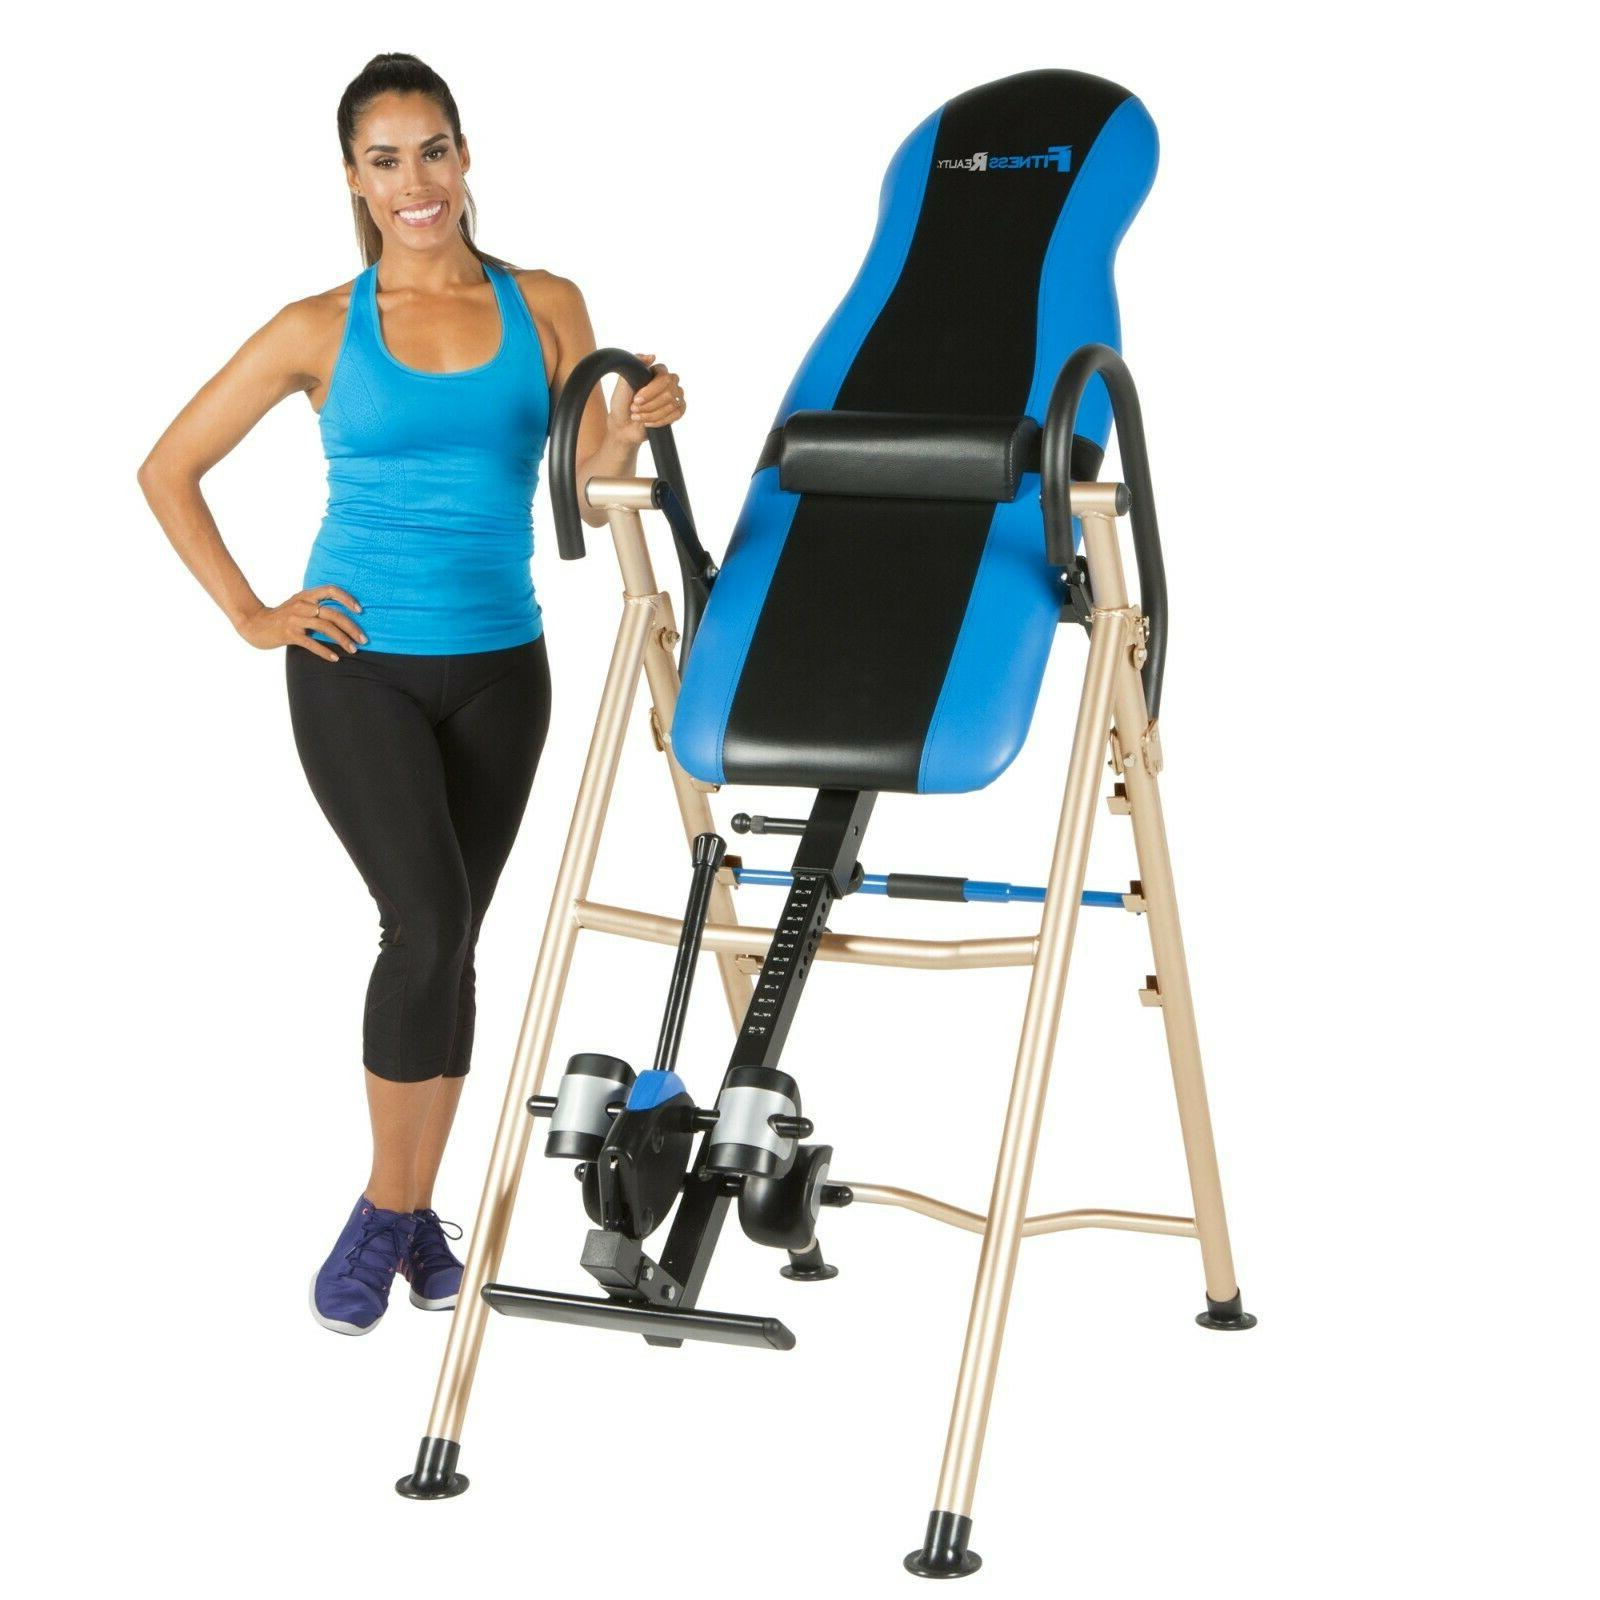 990xl inversion table with lumbar pillow